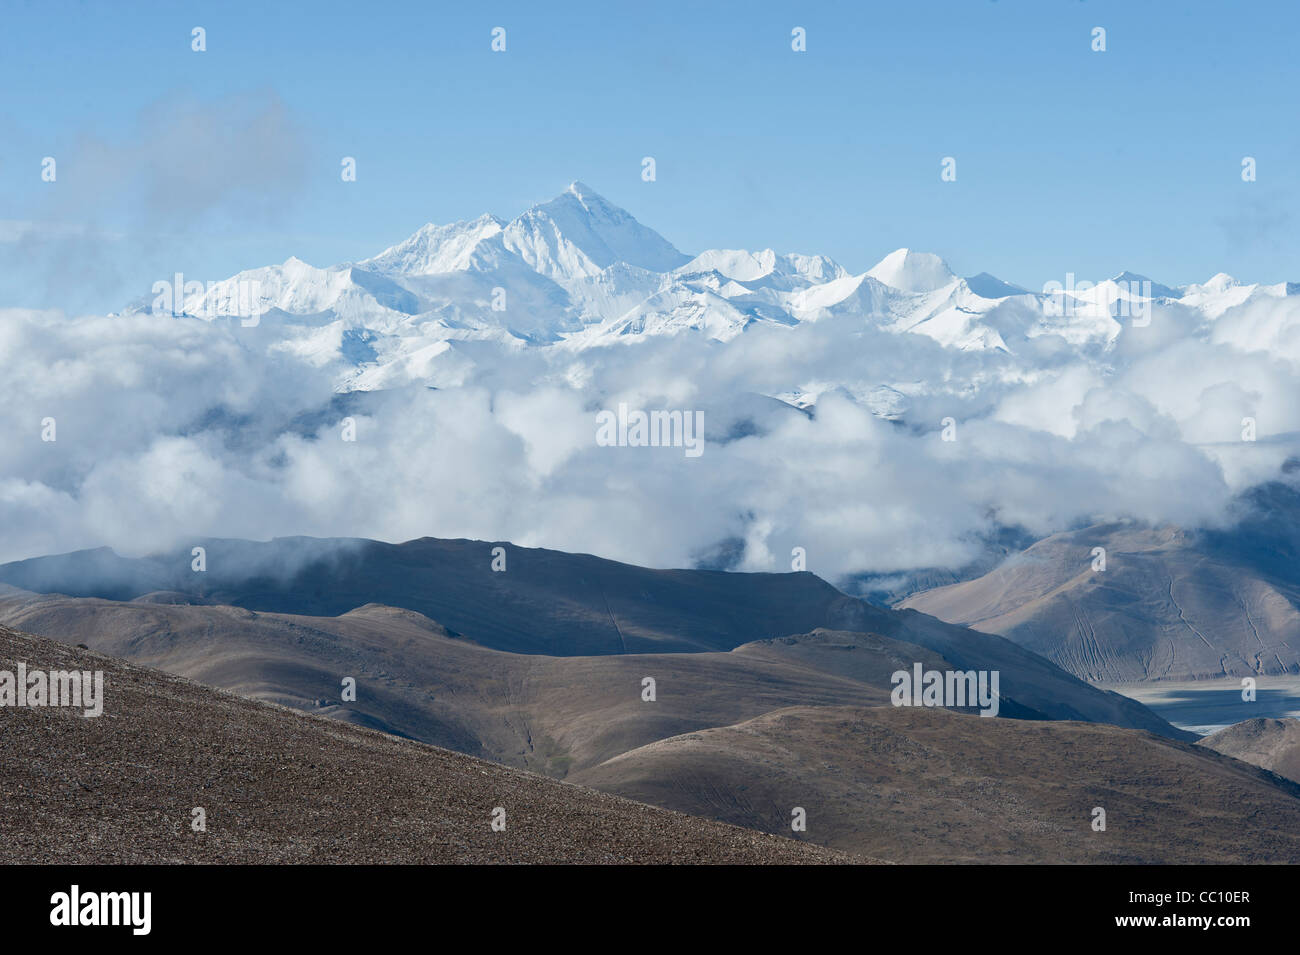 A view of Mount Everest in Tibet, a few kilometers from base camp - Stock Image